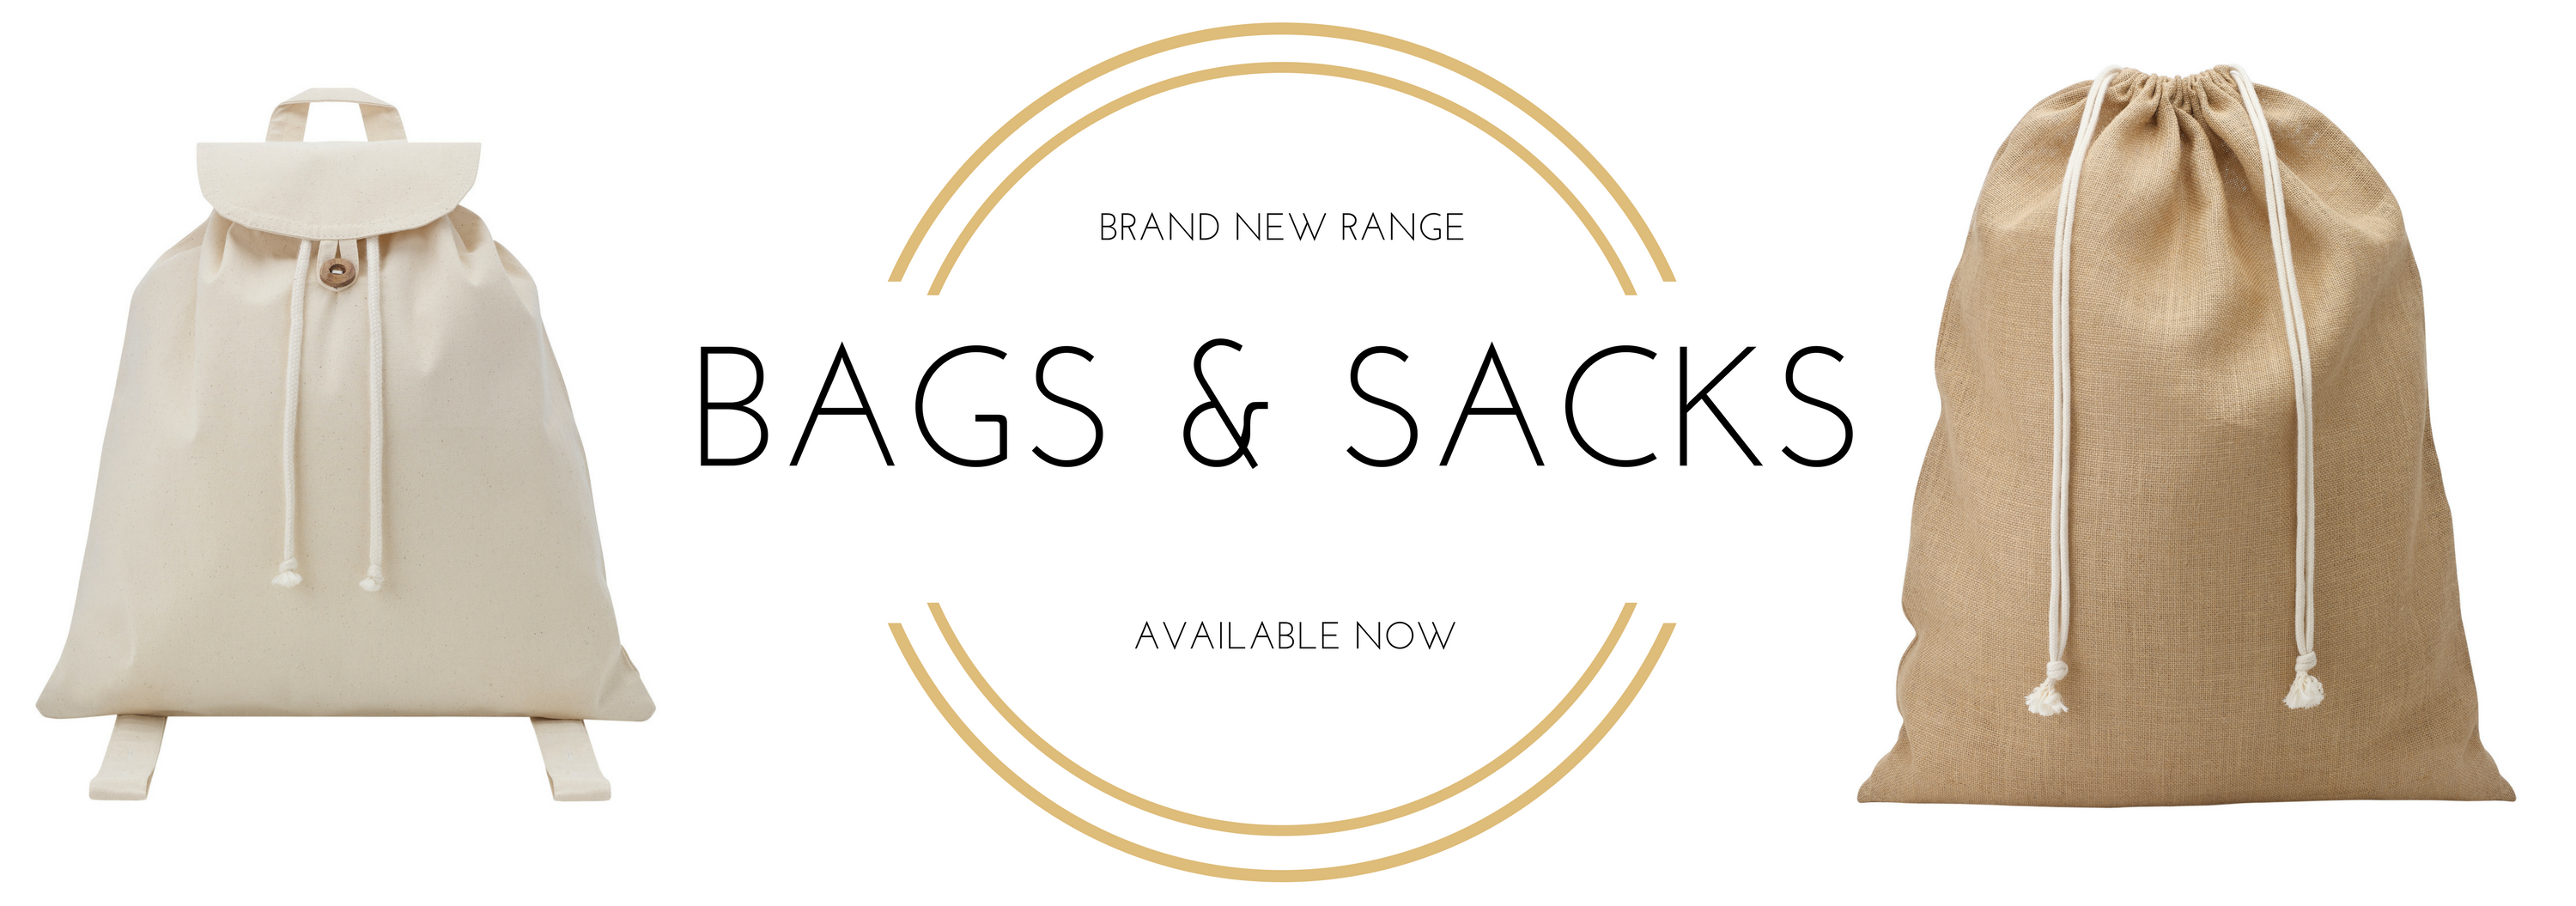 Bags and Sacks